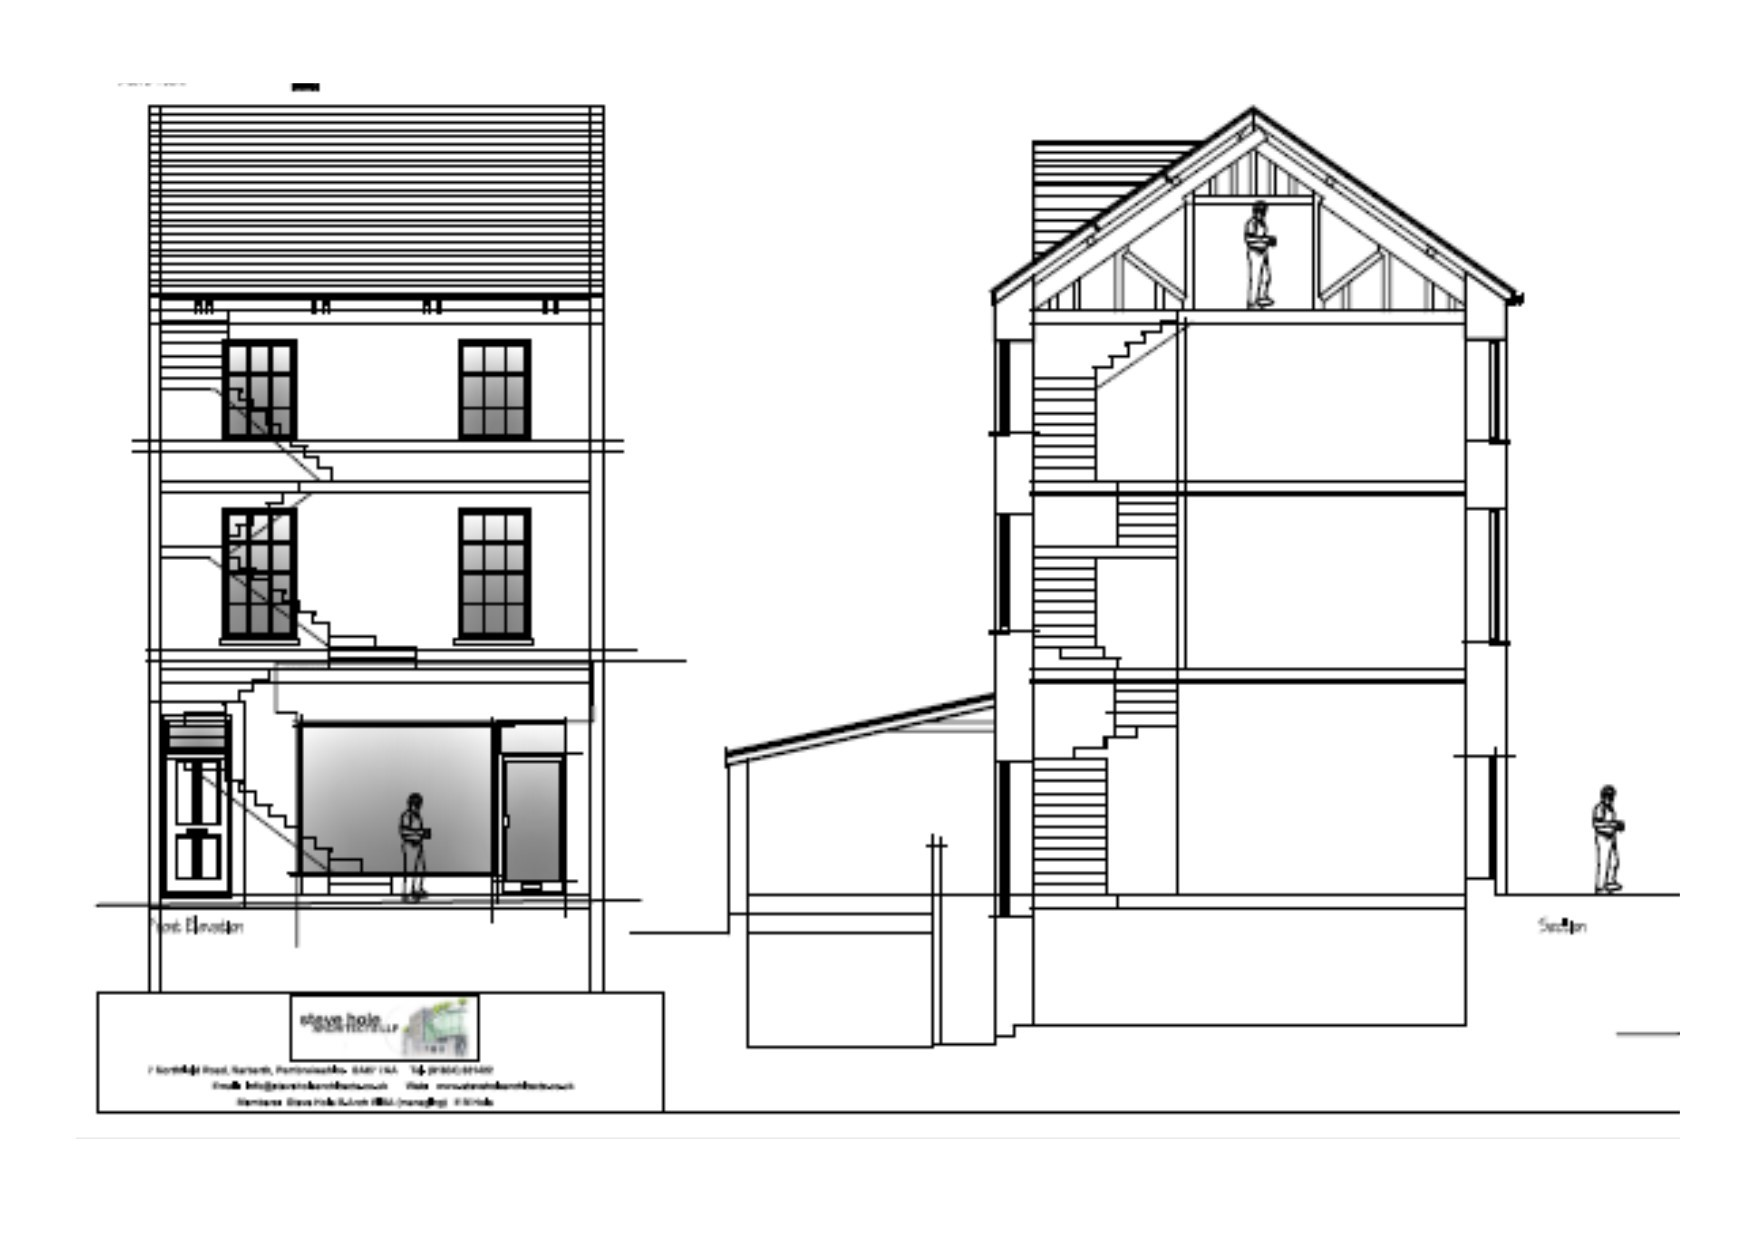 Plans for flats in Haverfordwest town centre encouraged by PCC